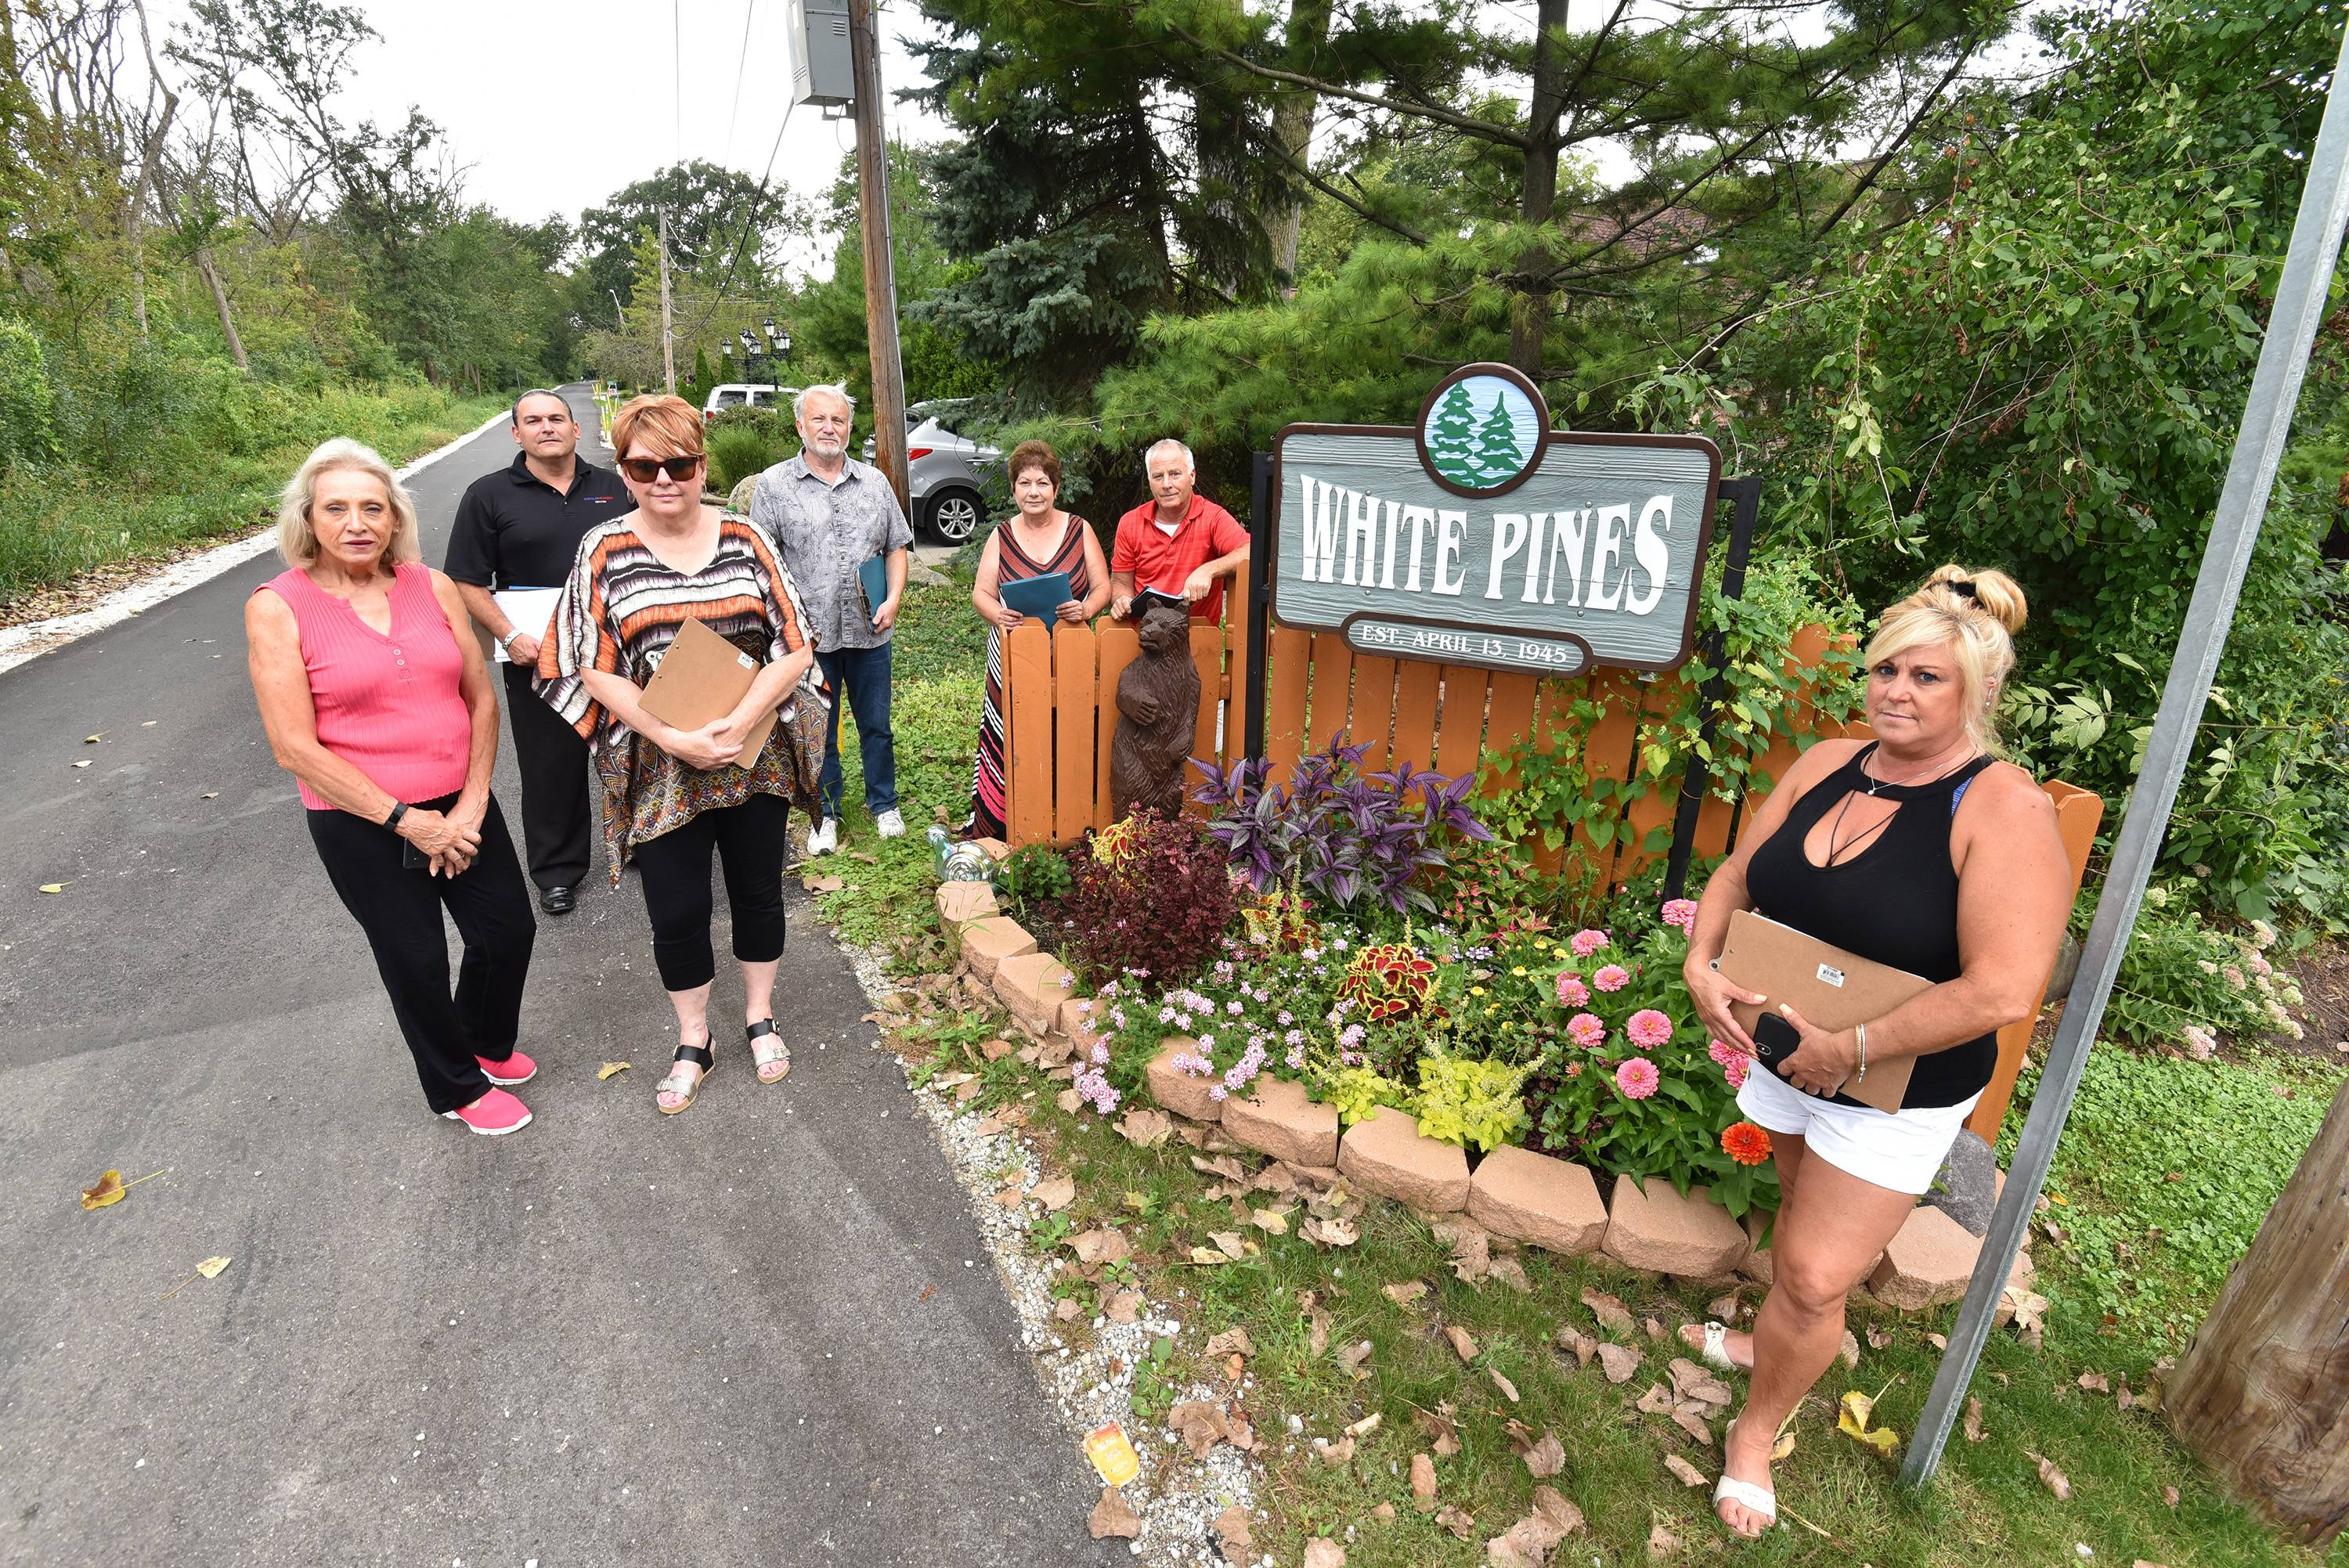 White Pines residents oppose Bensenville water project